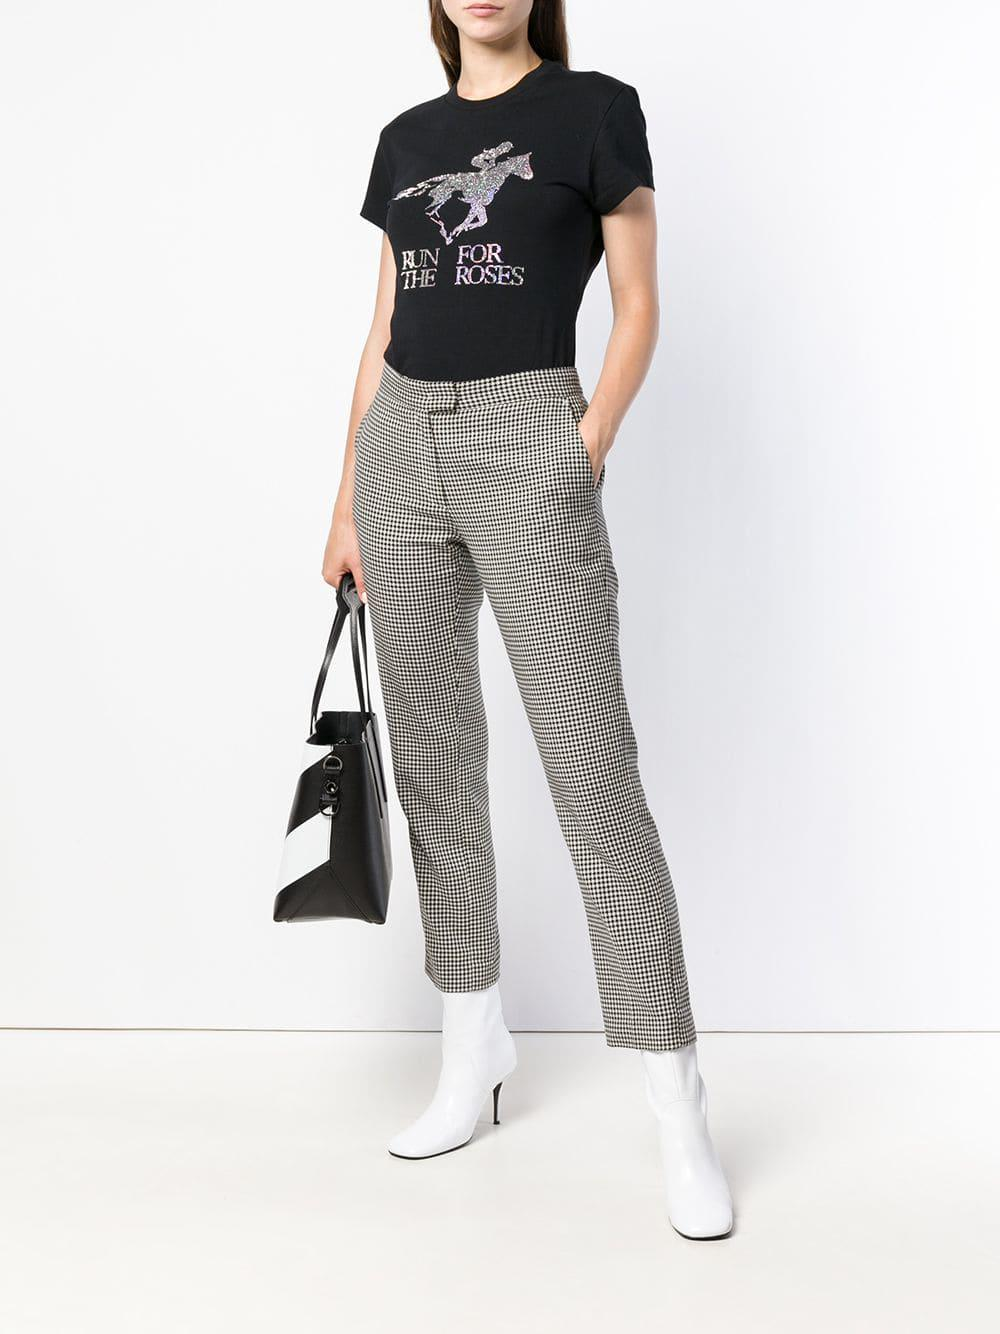 3c1ec0a1ed42 Off-White c o Virgil Abloh  run For The Horses  T-shirt in Black - Save 7%  - Lyst